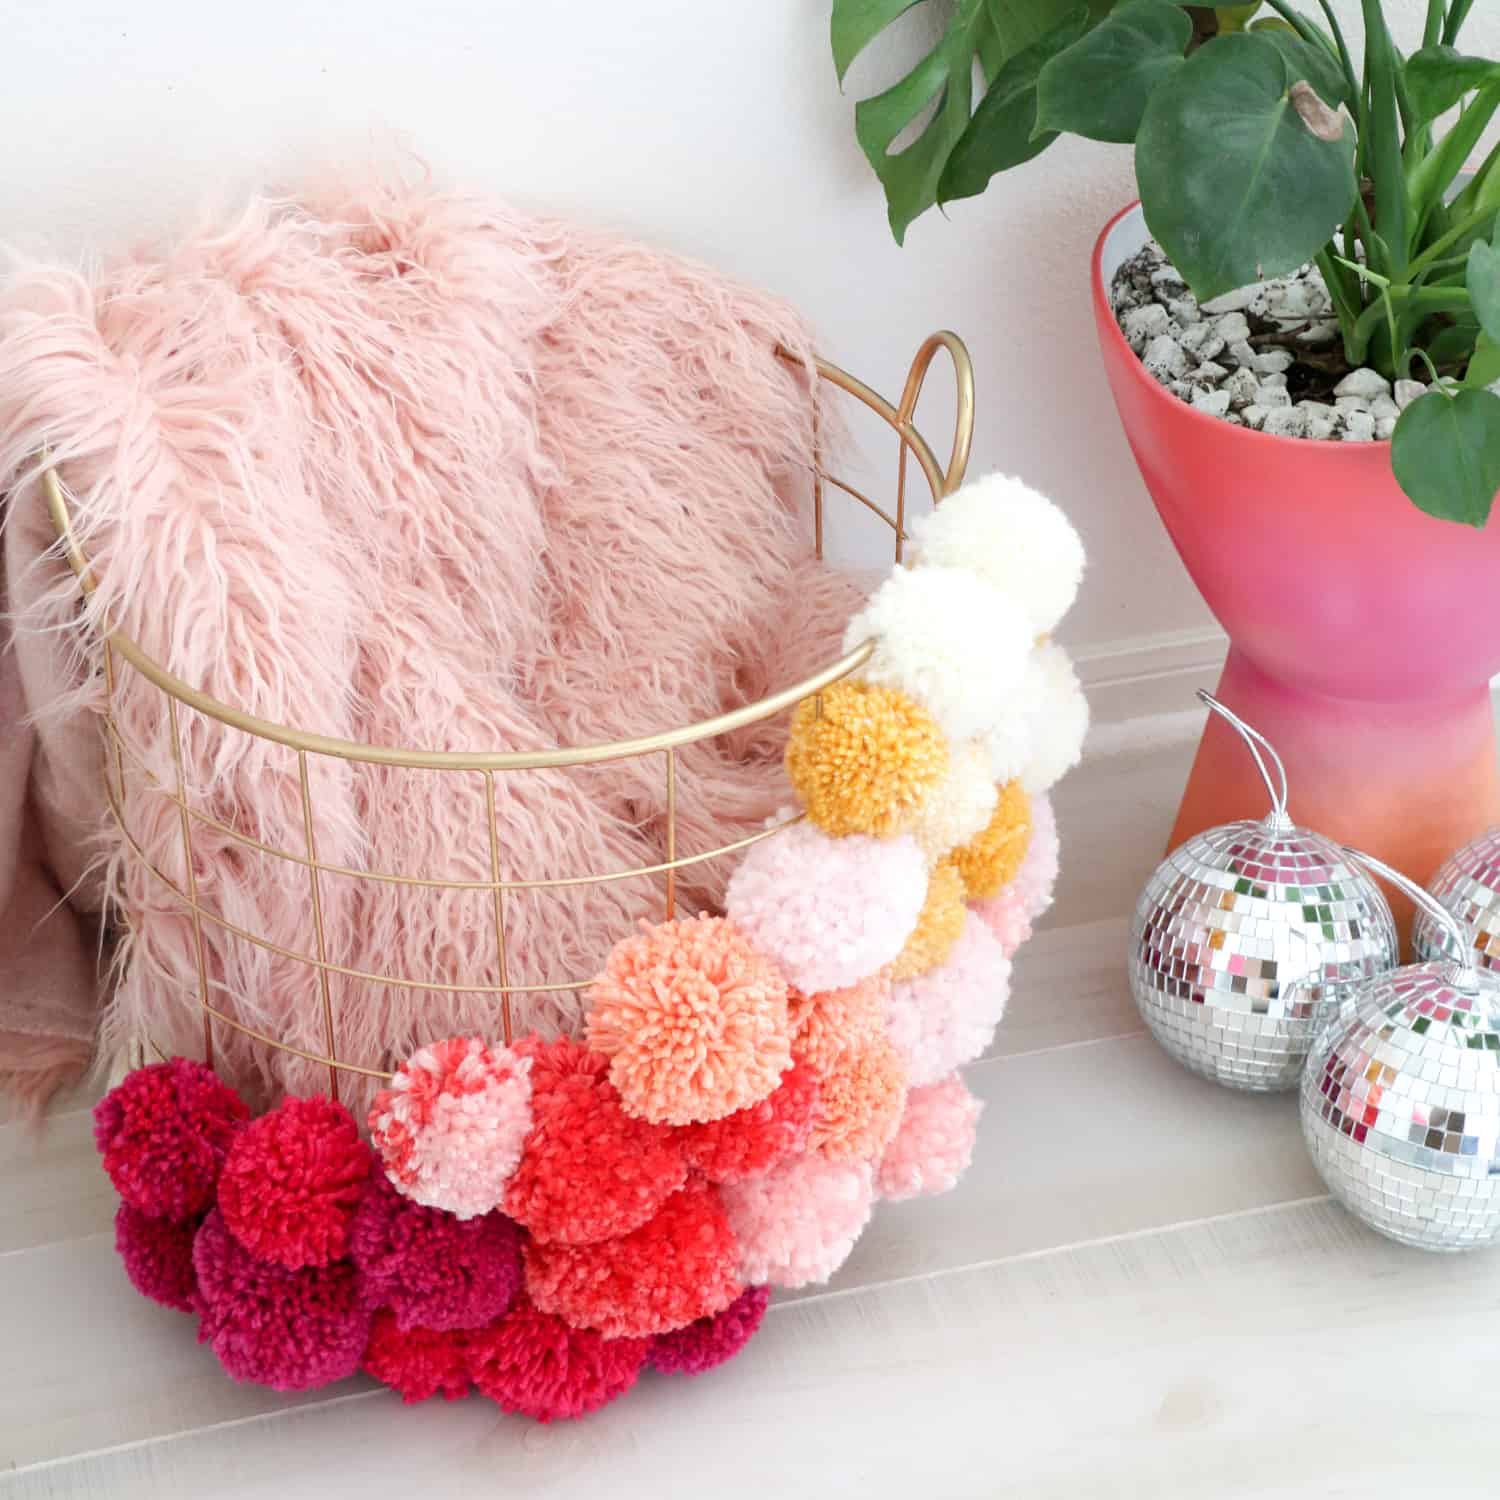 Make-your-own-pom-pom-basket-3